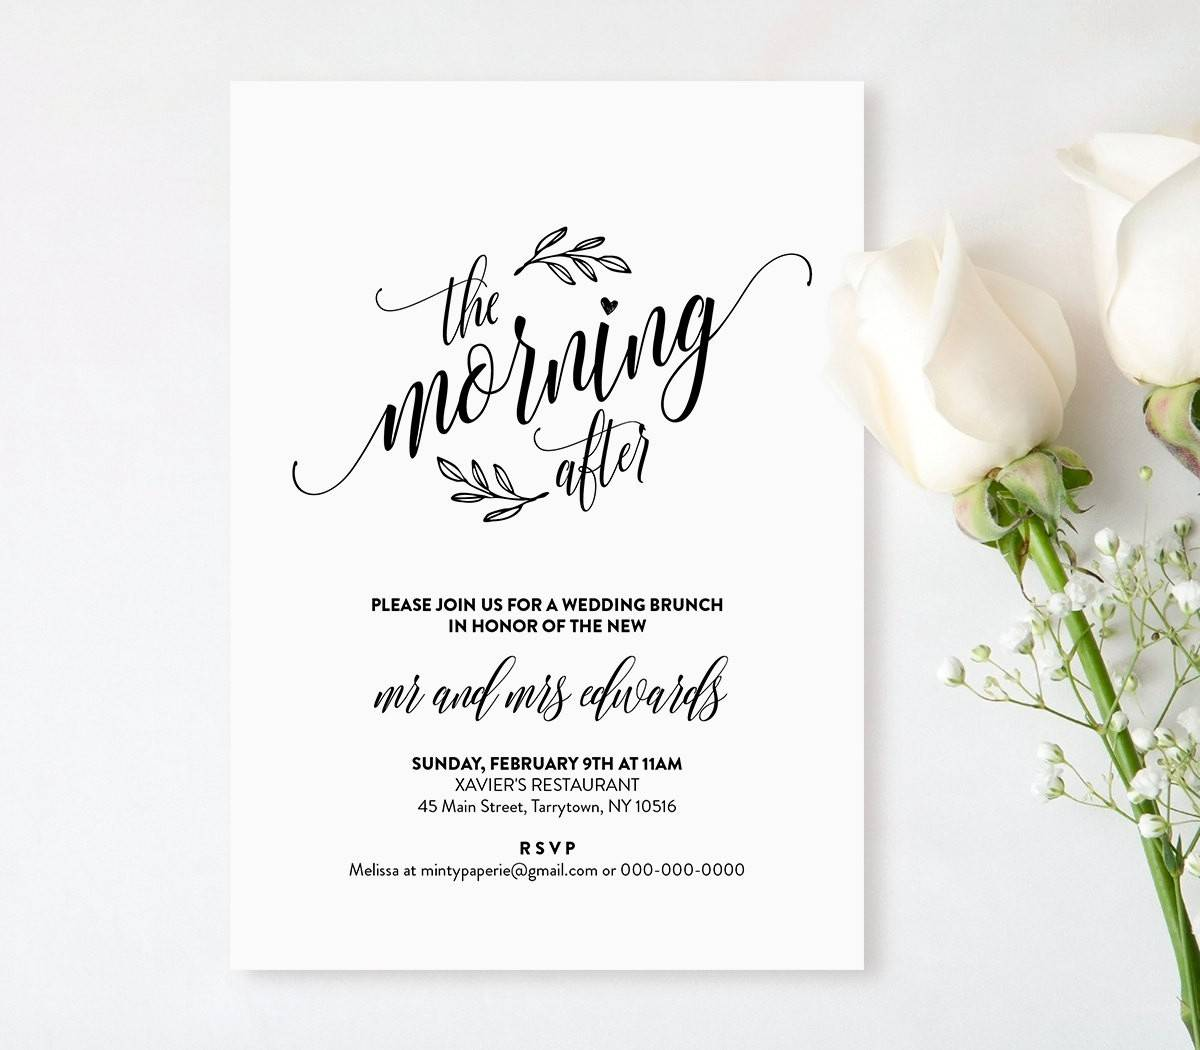 Post Wedding Brunch Invitation Template